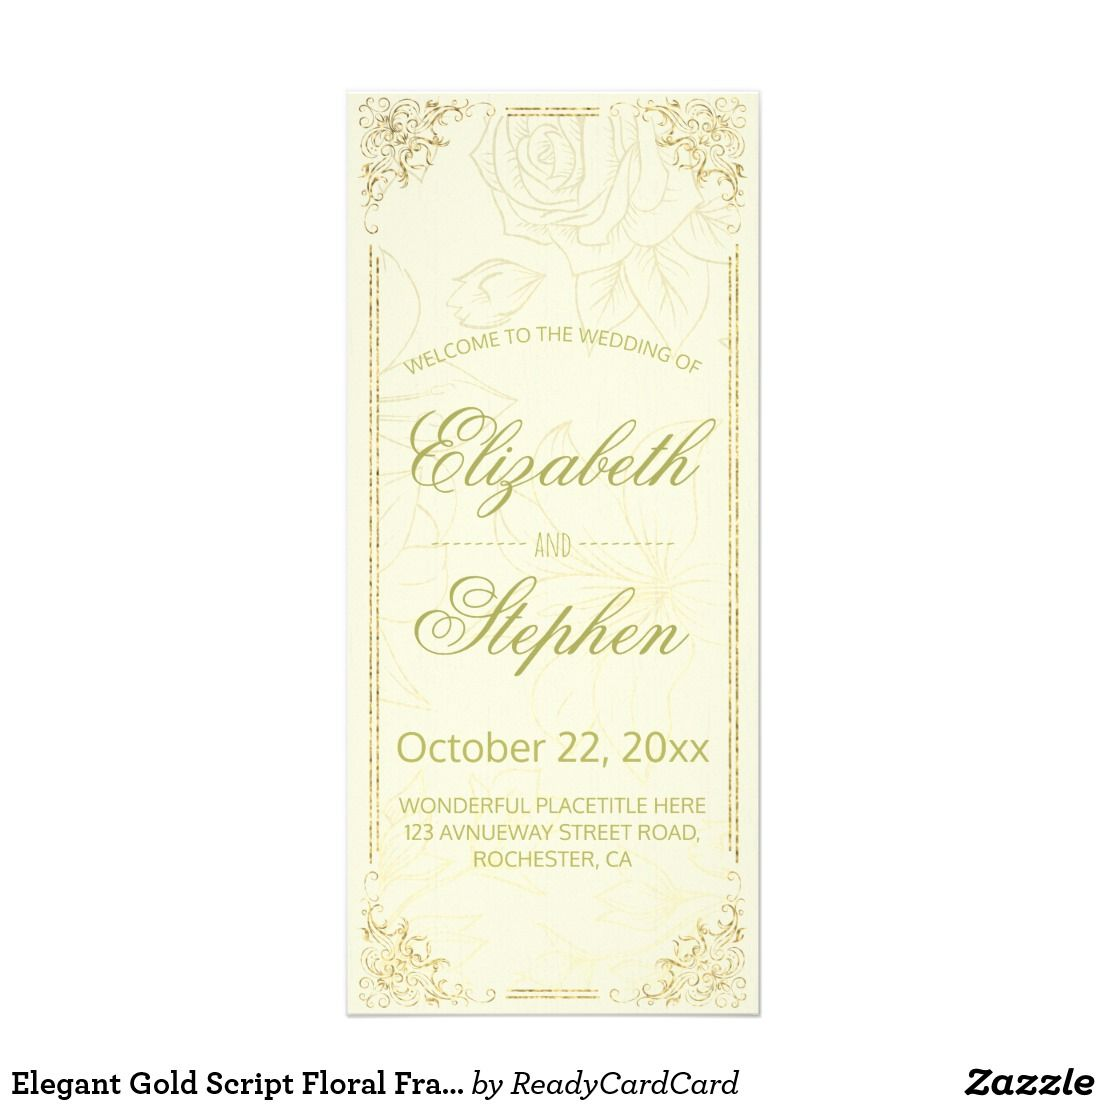 Elegant Gold Script Floral Frame Wedding Program